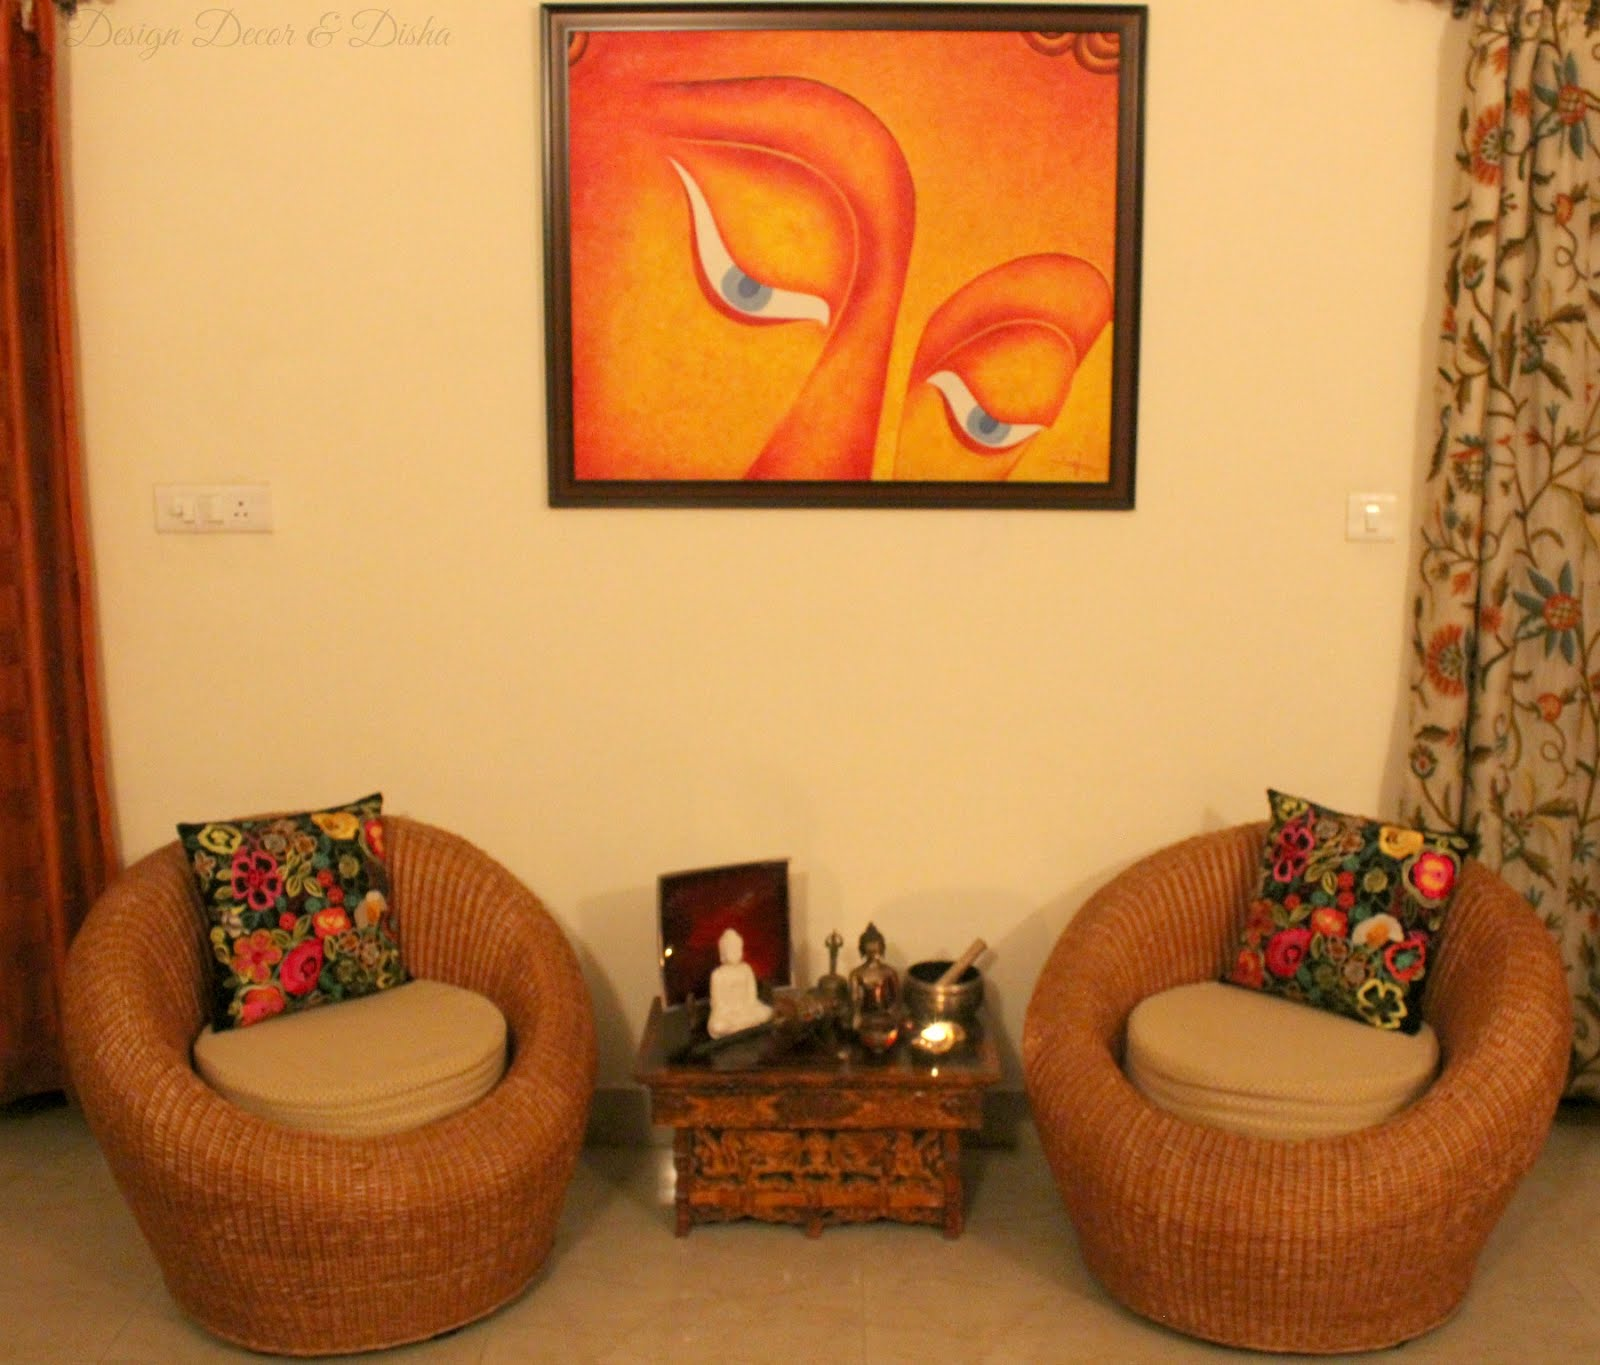 Design decor disha an indian design decor blog home for Home decorating ideas indian style